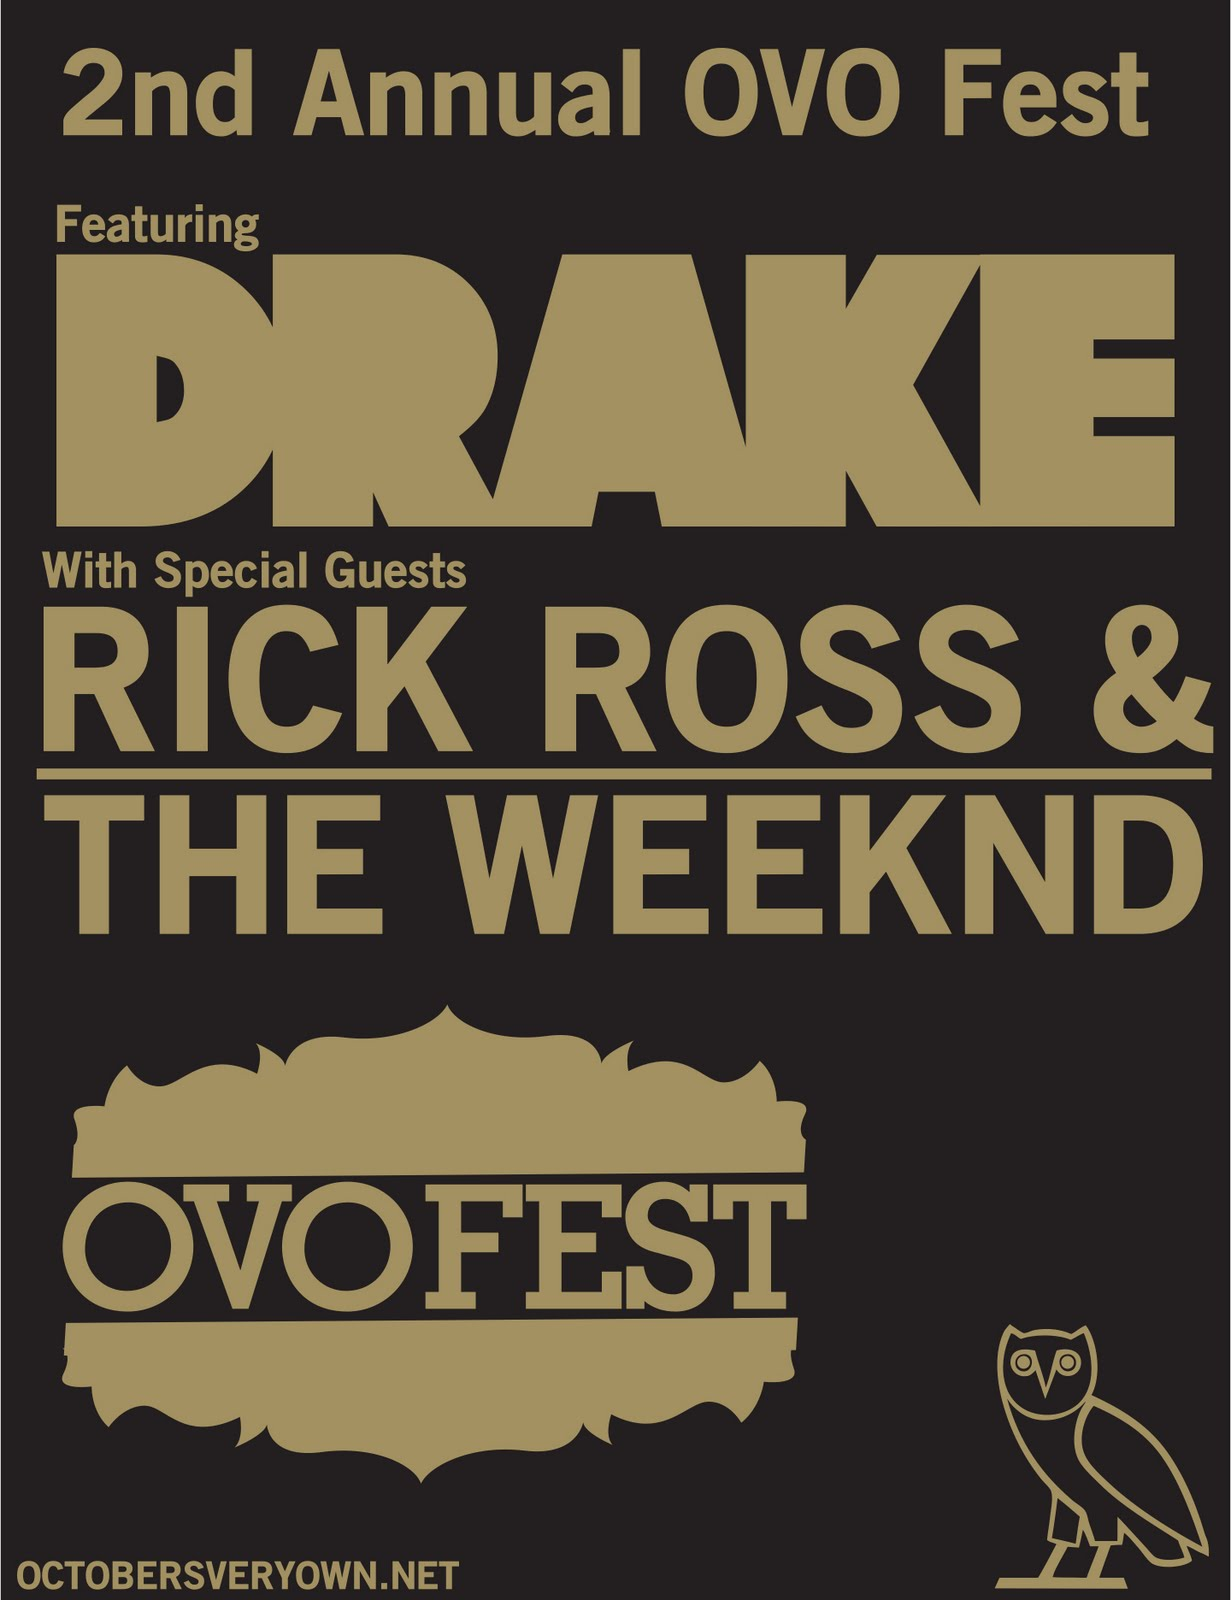 "A flyer for OVOFest, a concert. Gold lettering against a black background reads ""2nd Annual OVO Fest featuring Drake with special guests Rick Ross & The Weeknd"". Below on the left is the logo of OVOFest. On the bottom right is a stylized image of an owl, the logo of OVO."